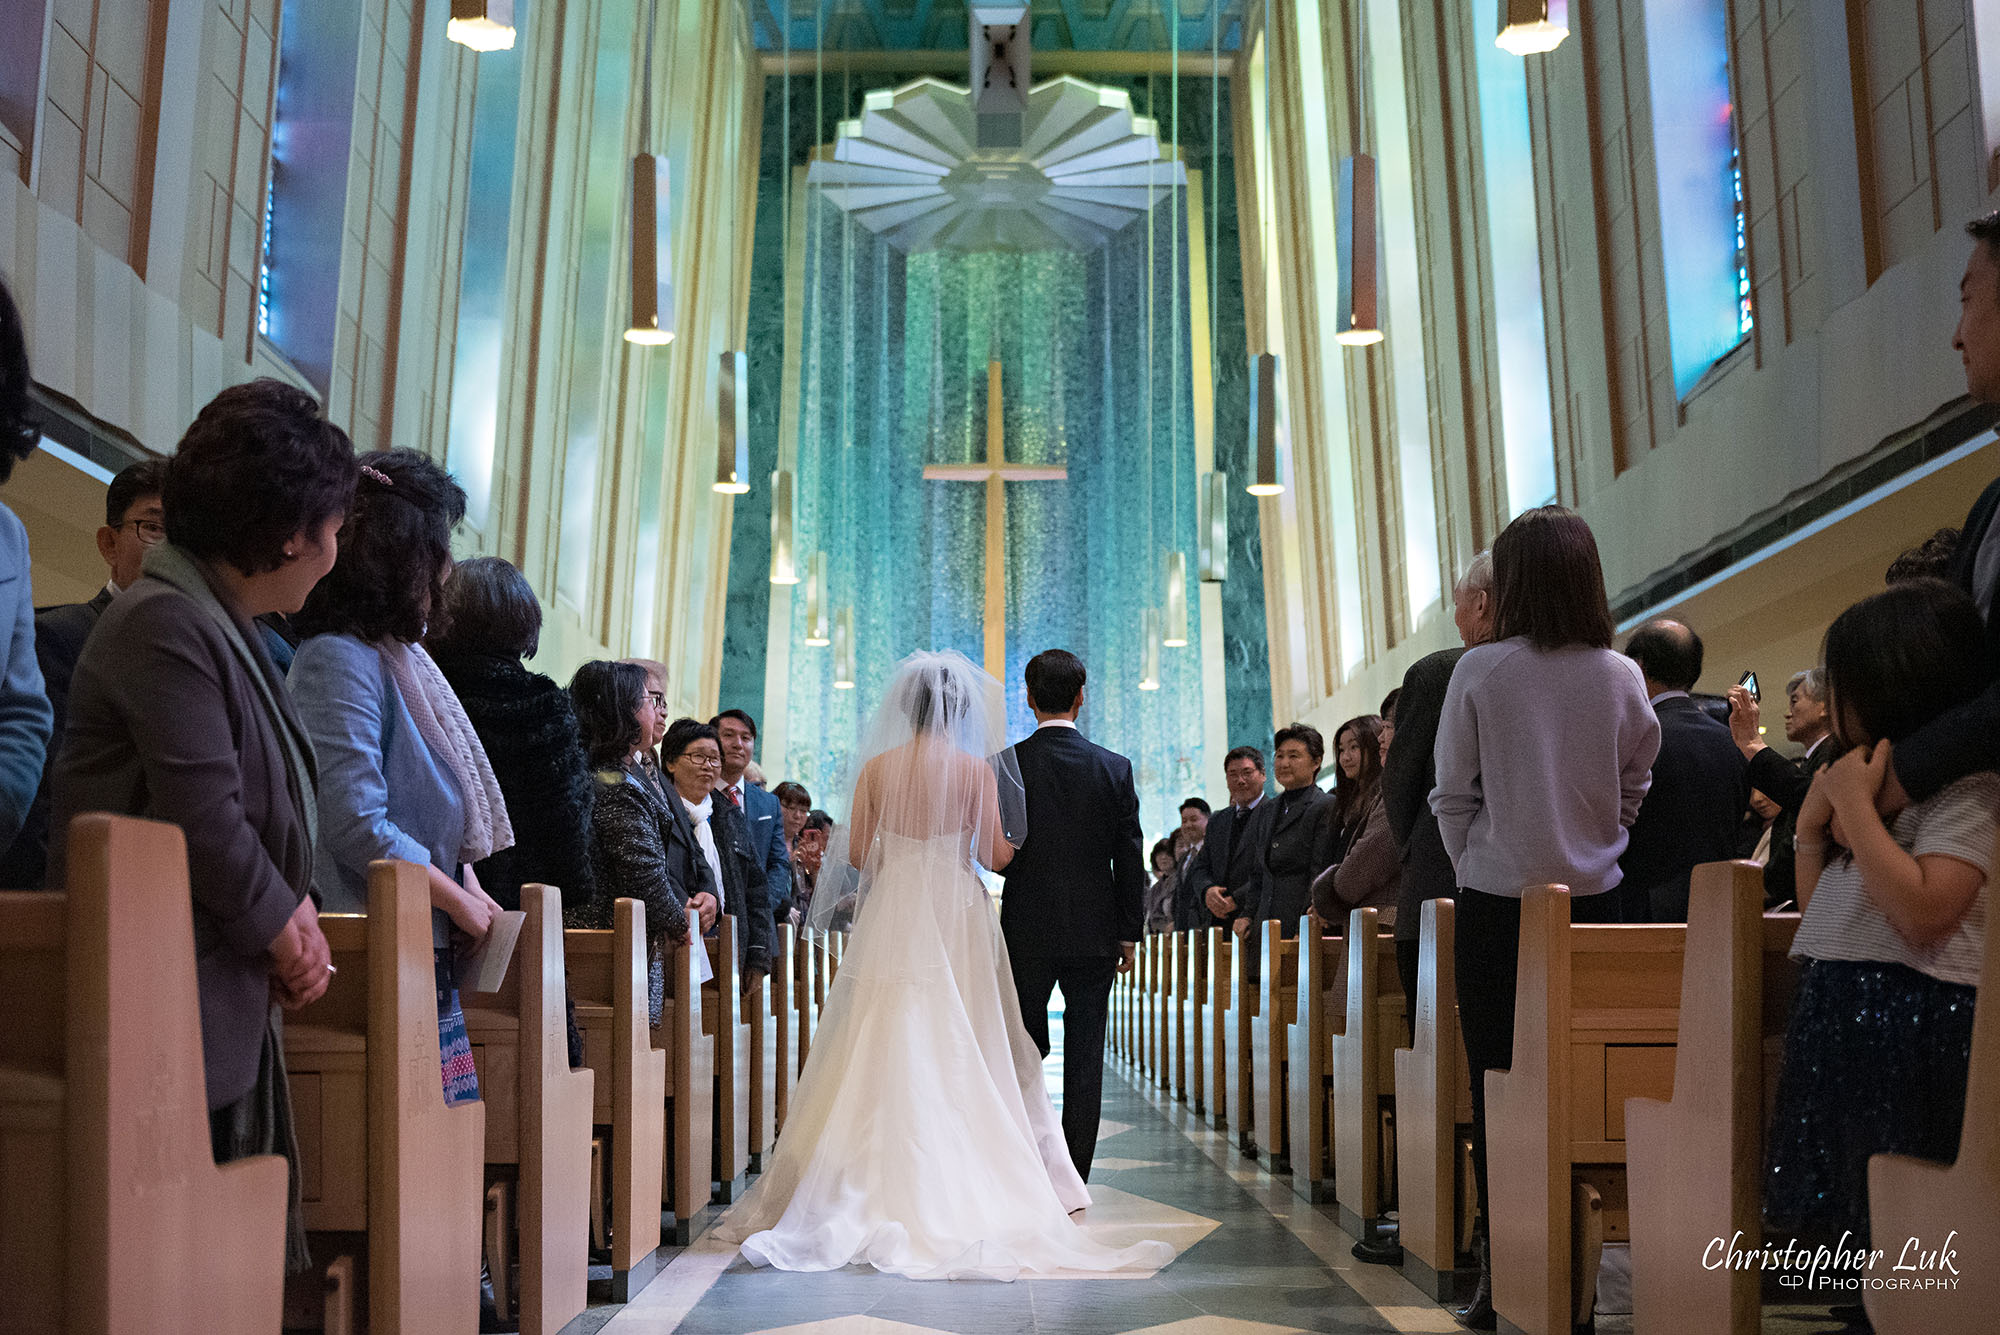 Christopher Luk Toronto Wedding Photography Tyndale Chapel Church Ceremony Venue Location Bride Father Walking Down the Aisle